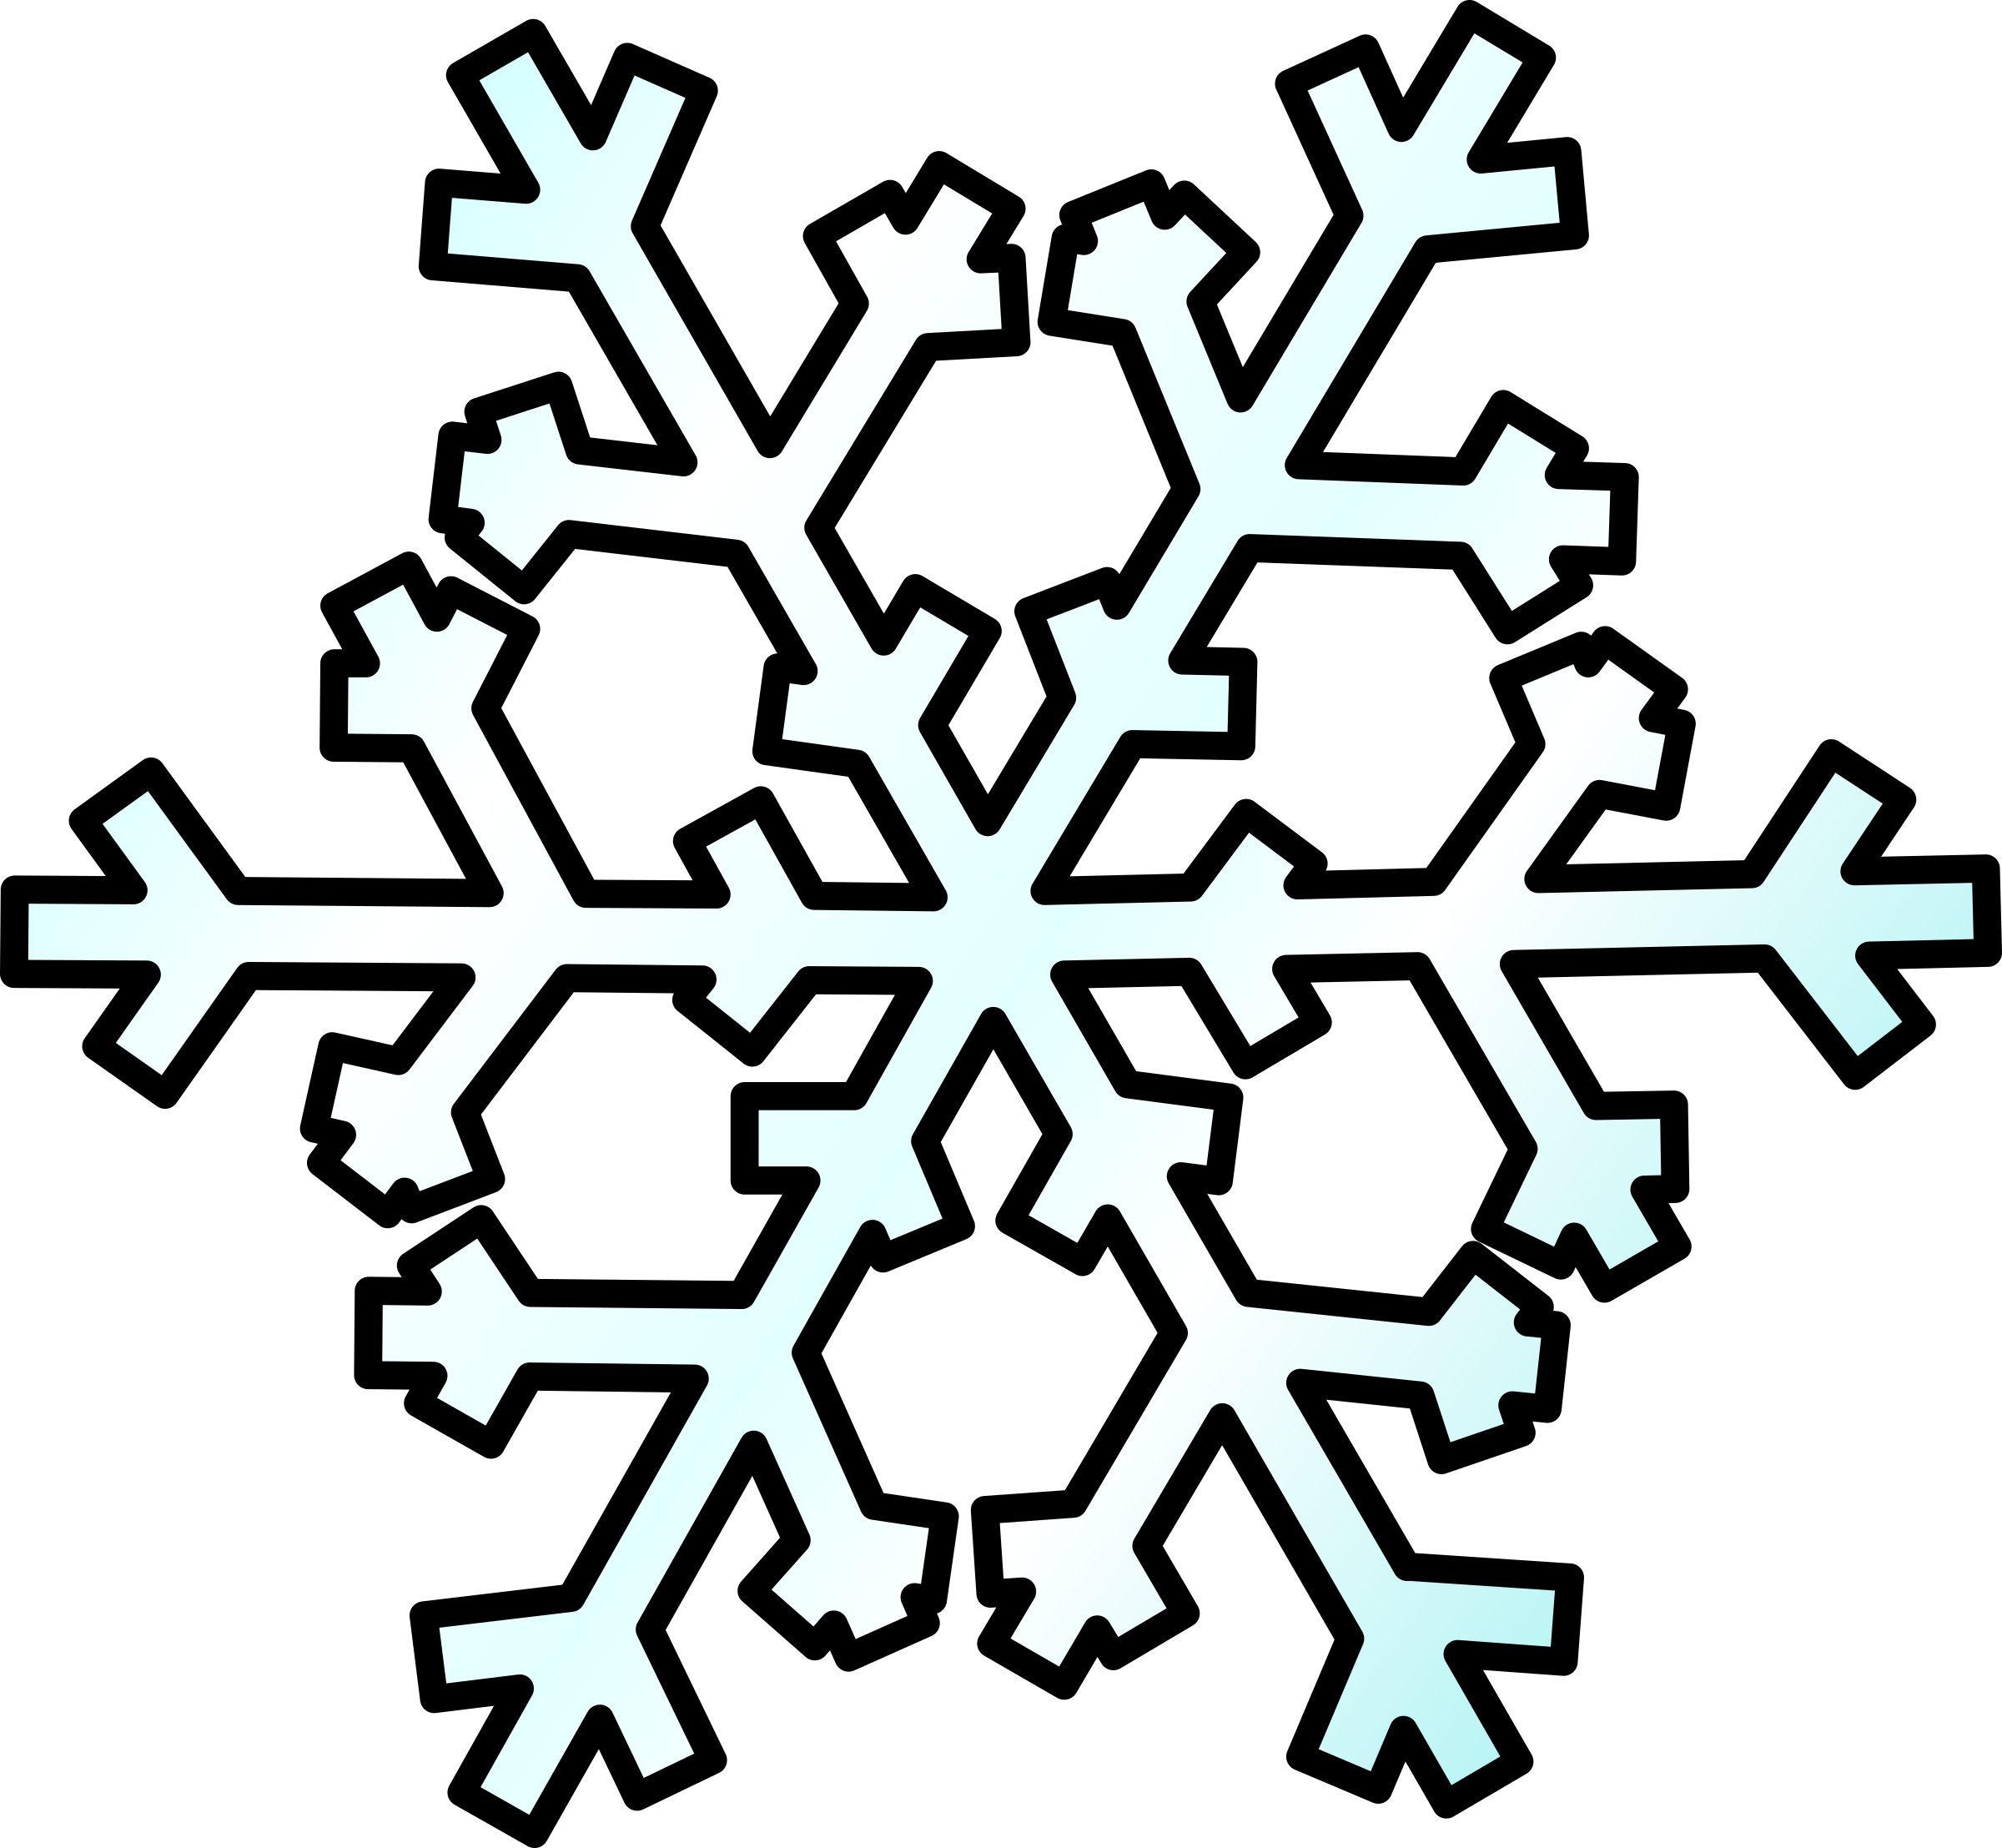 Snowflake banner clipart free image royalty free download Flake clipart snow weather ~ Frames ~ Illustrations ~ HD images ... image royalty free download